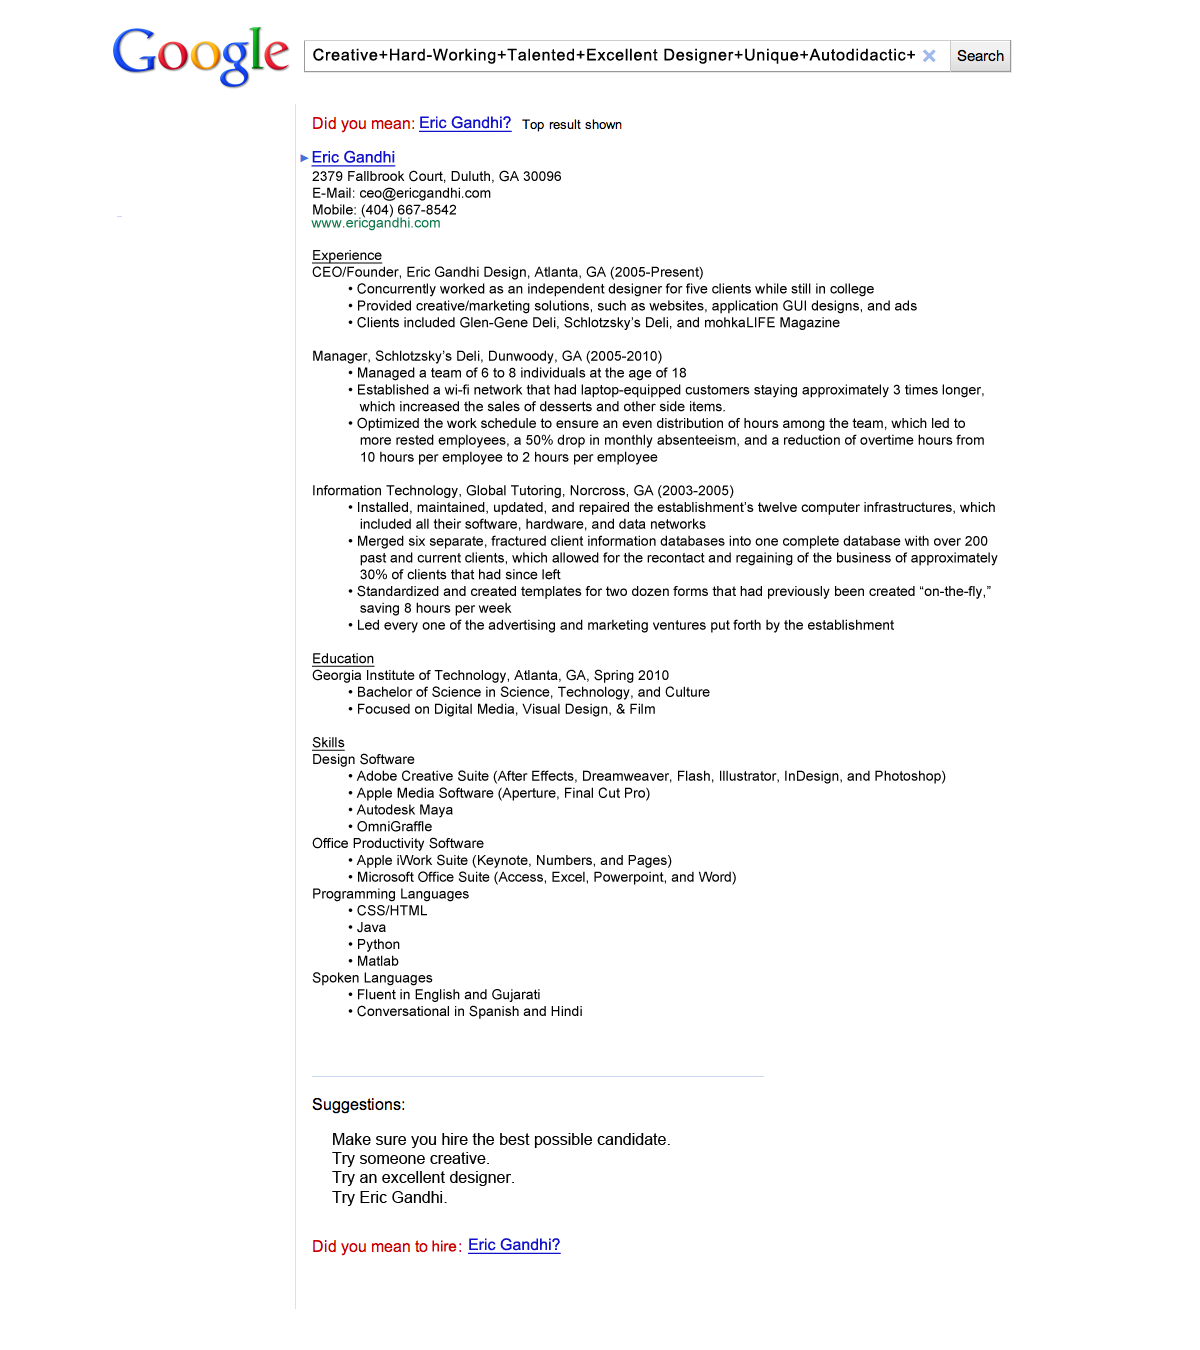 1000+ images about Extreme CV/Resume on Pinterest | Creative ...